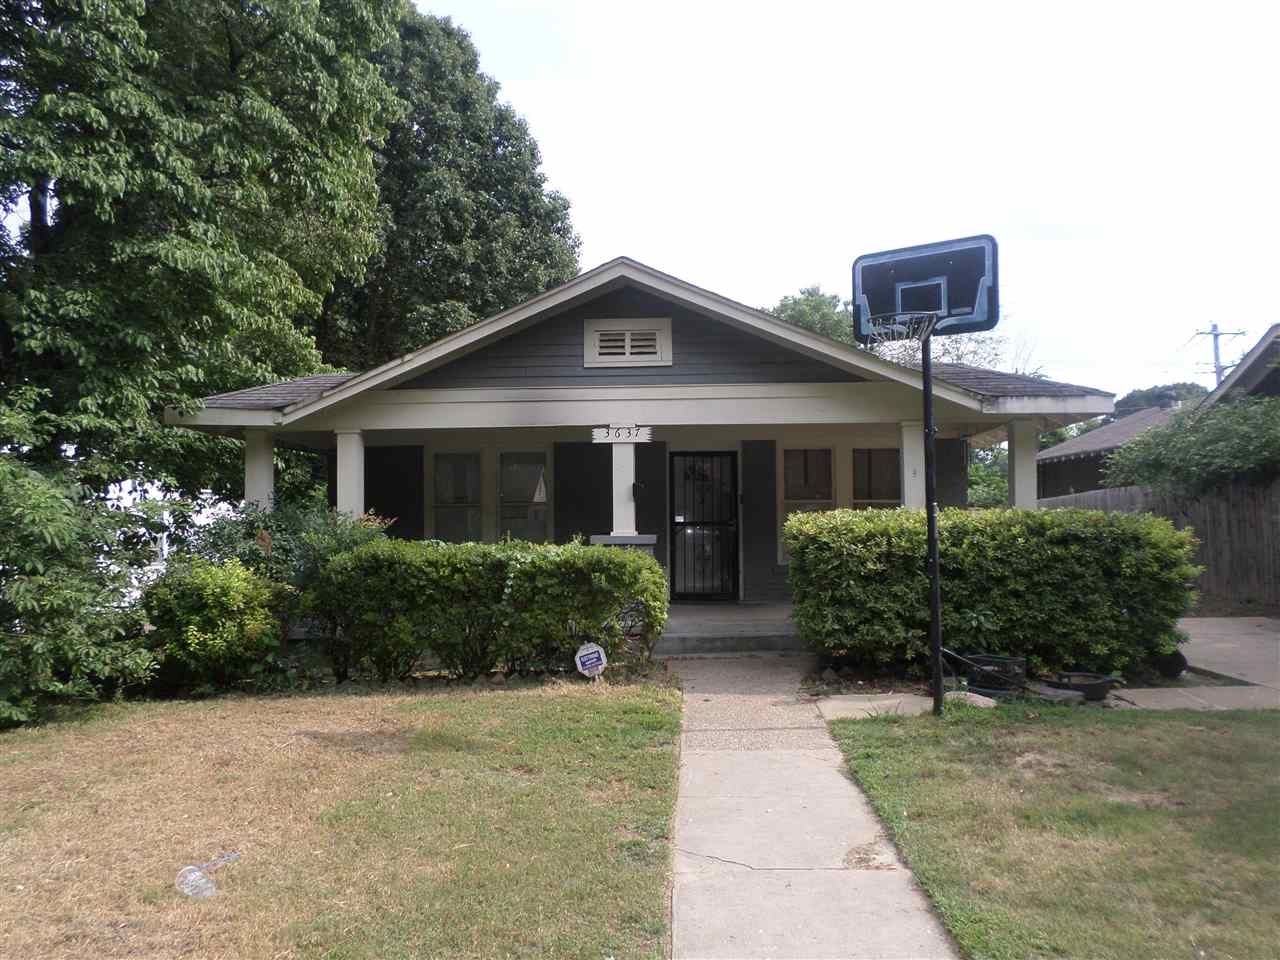 3637 Douglass Memphis, TN 38111 - MLS #: 10034040